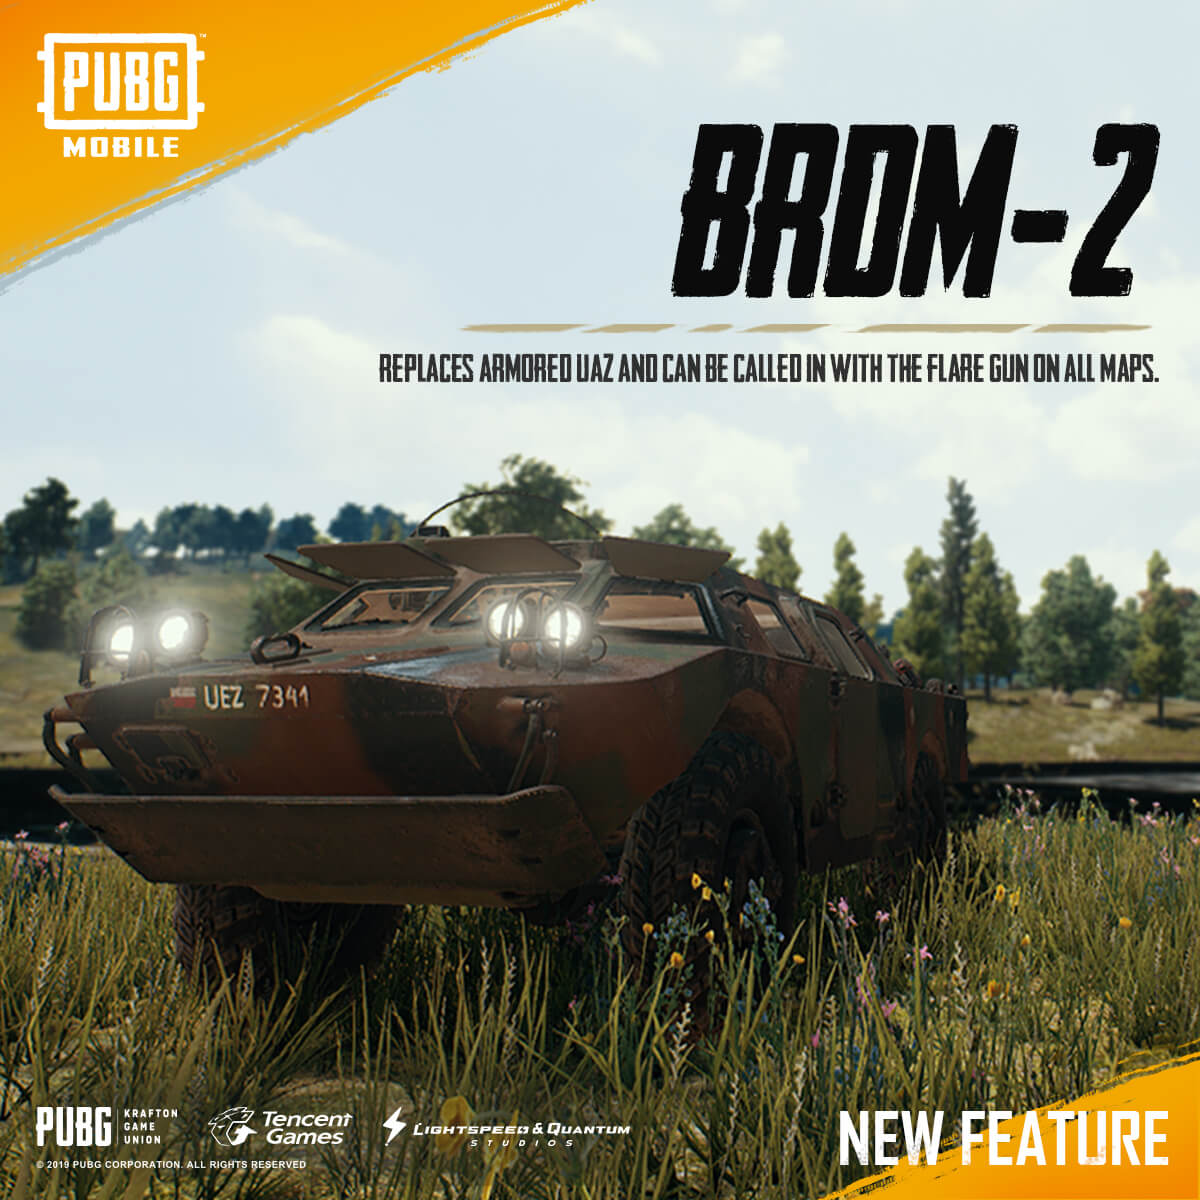 PUBG Mobile Official Patch Notes 0.15.0 Update 2